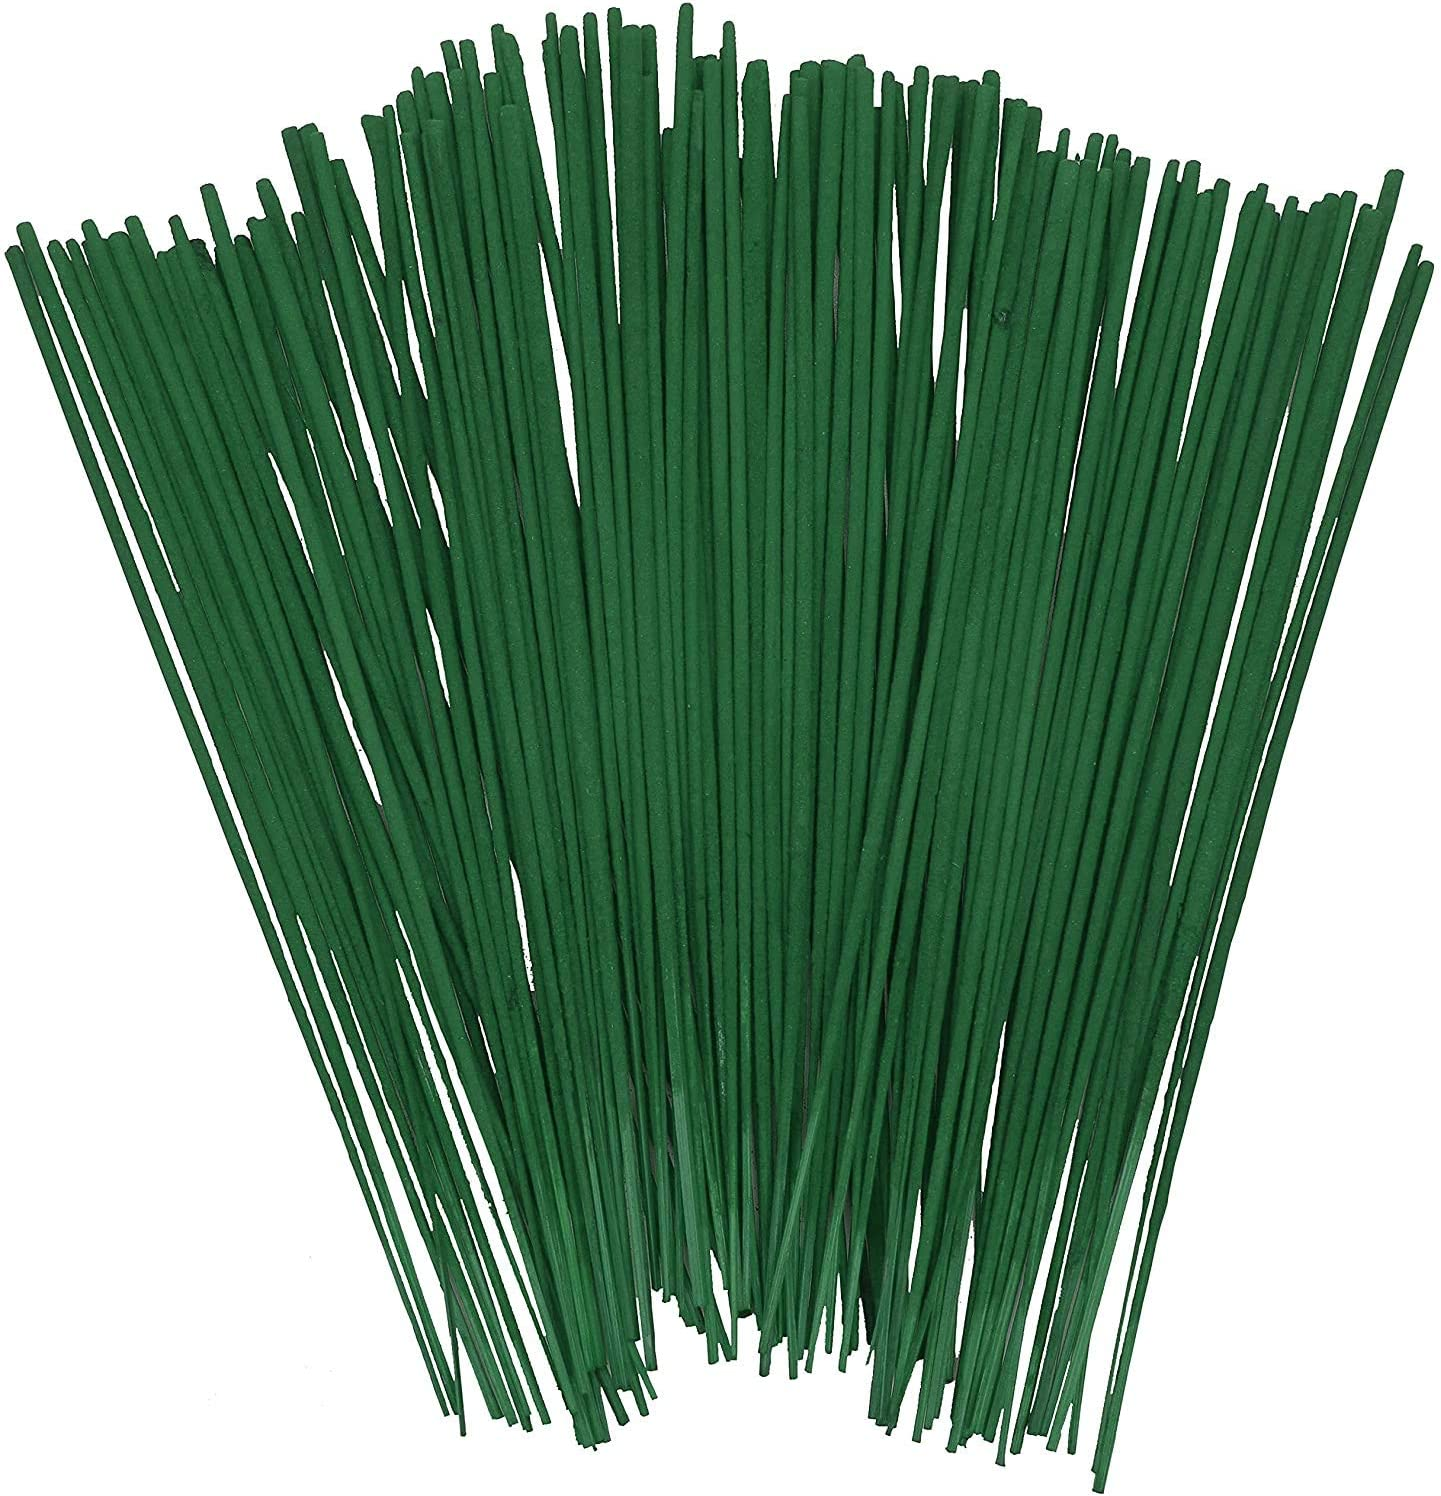 Hosley 120 Pack of Fresh Bamboo Fragrance Incense Sticks Infused with Essential Oils Ideal for Home Spa Meditation and Aromatherapy O9